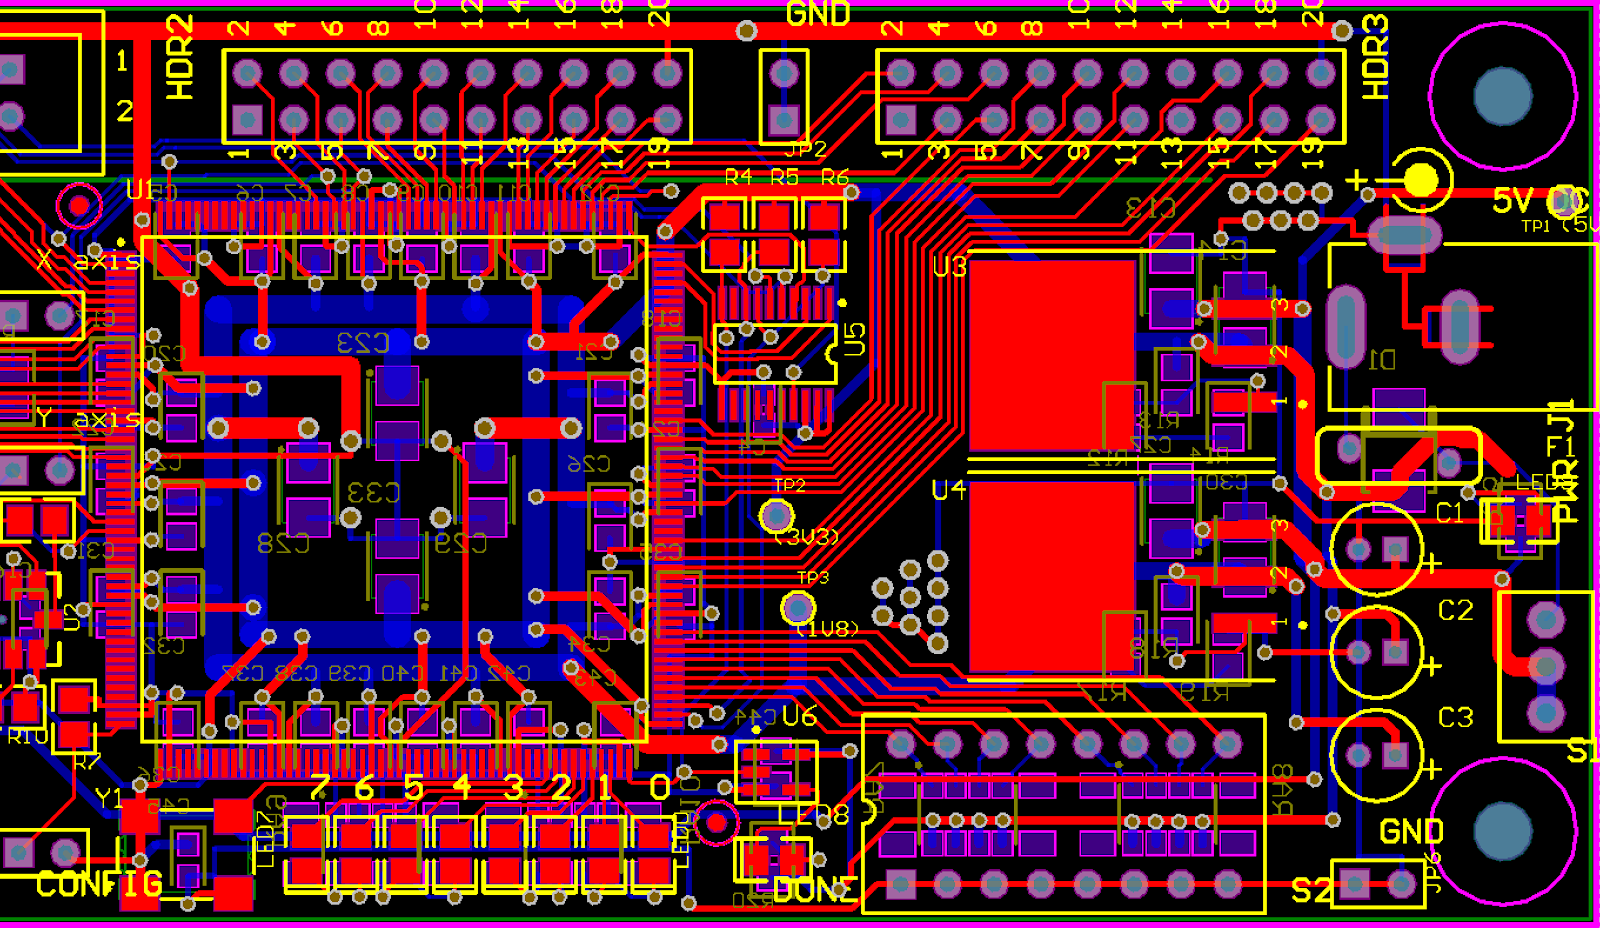 pcb-autorouter-after